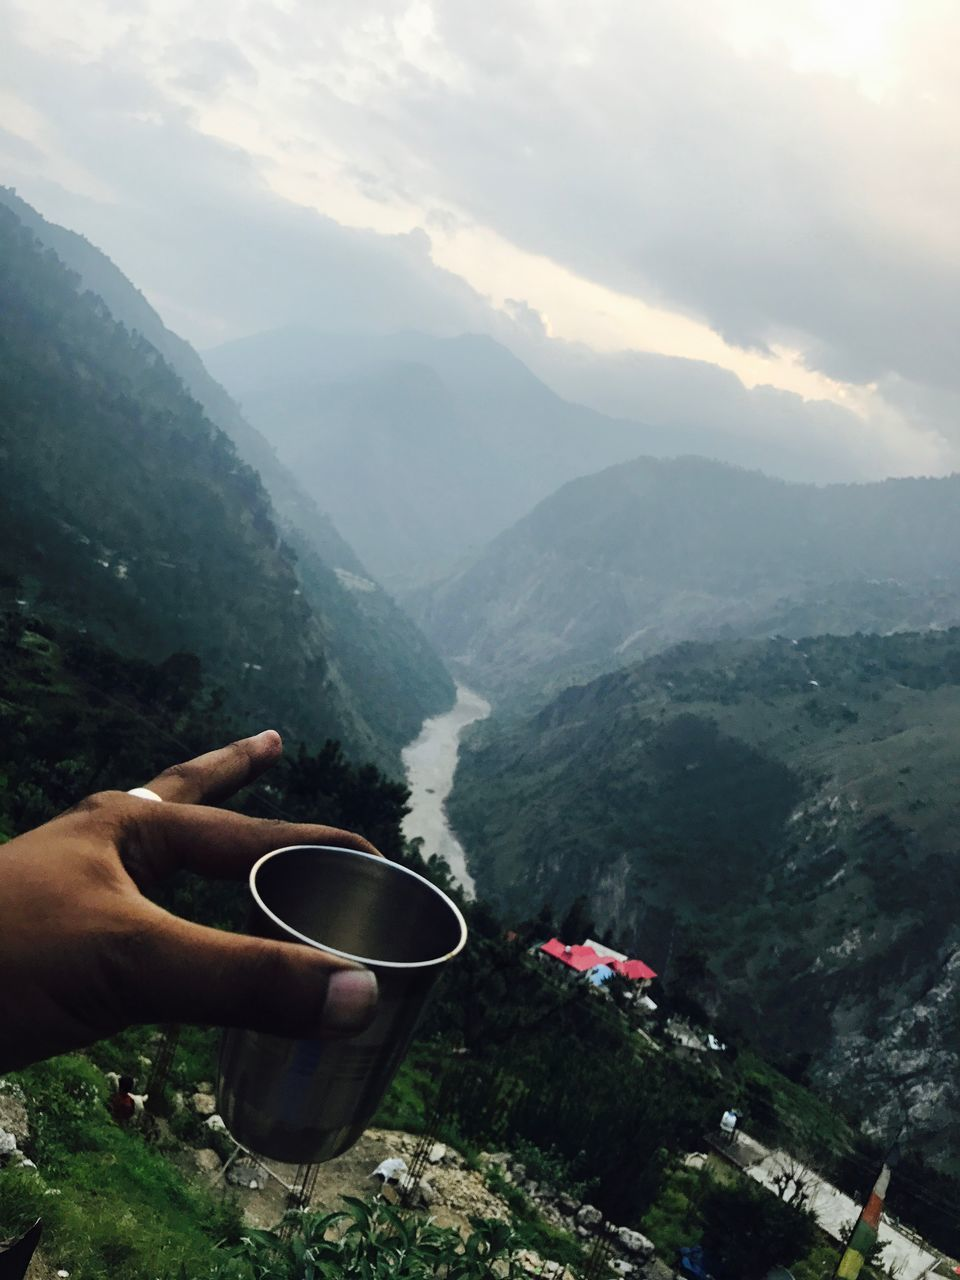 Photos of On the Wheels Again: To Chitkul 1/1 by Solaceonwheels